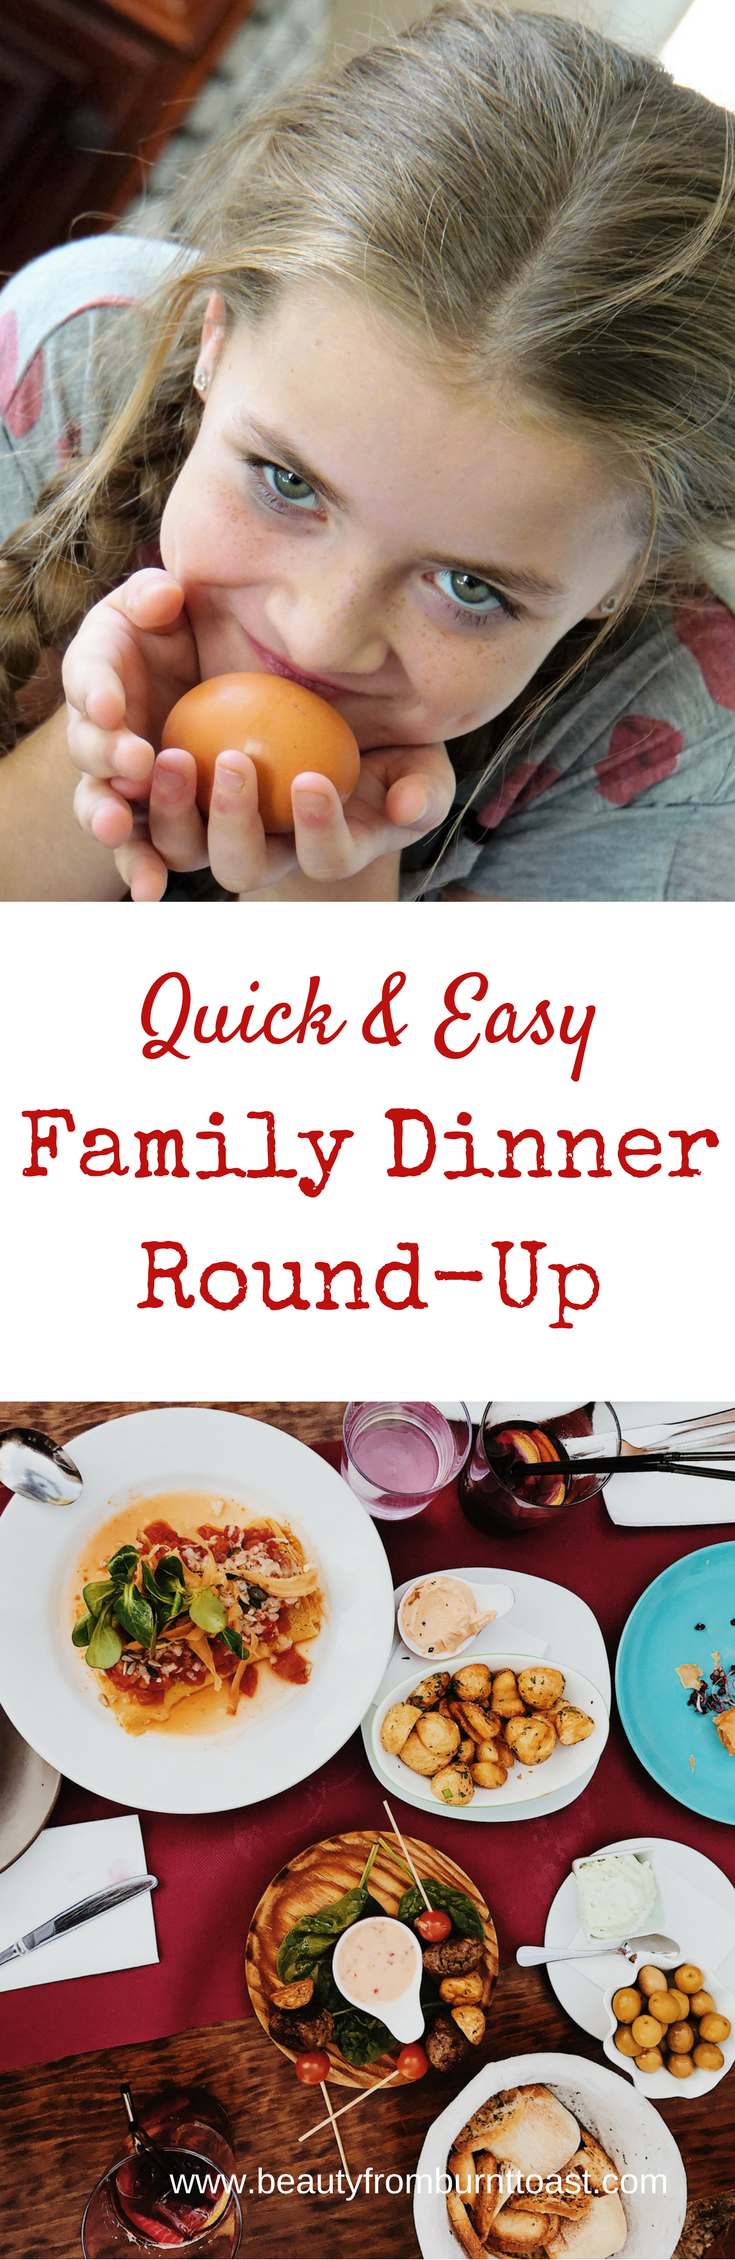 Weeknight dinners are hard. What could be better than a tried and true arsenal of family favorites that are easy and quick and also family approved? Here's a weeks worth of meals that won't take precious time away from what's really important, your family.